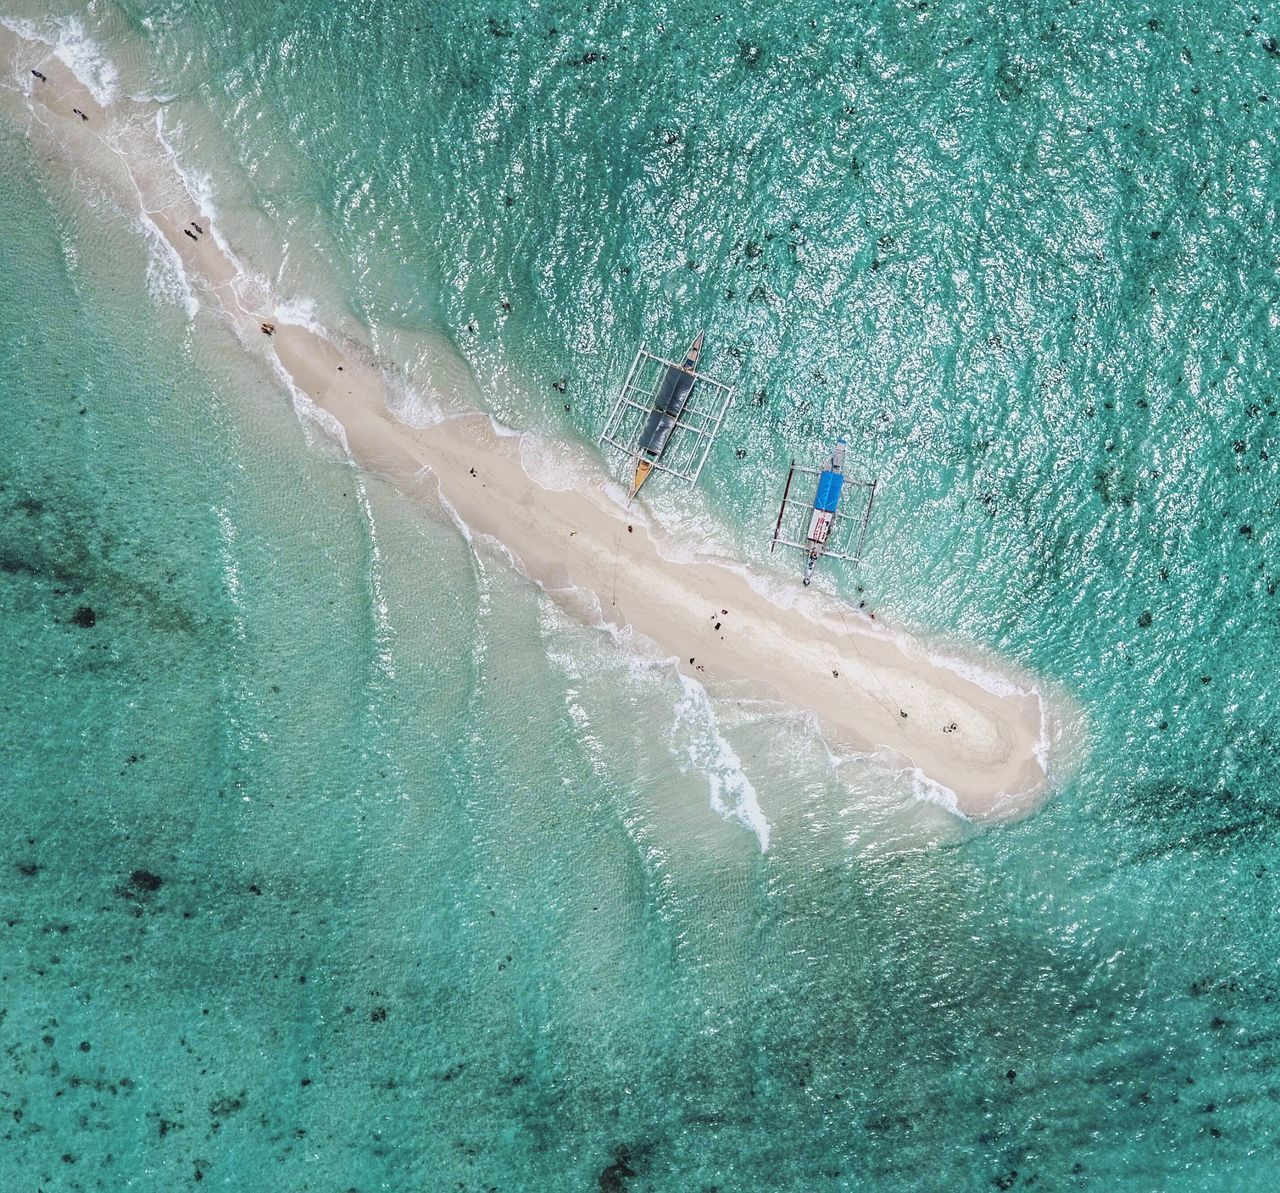 Water Beach Sea Vacations Shore High Angle View Sand Sandbar Ocean Travel Tourist Tourism Tranquil Scene Tranquility Relaxation Scenics Travel Destinations Nature Traveling Eyeem Philippines Whitesand Calm Tour Drone  The Week On EyeEm